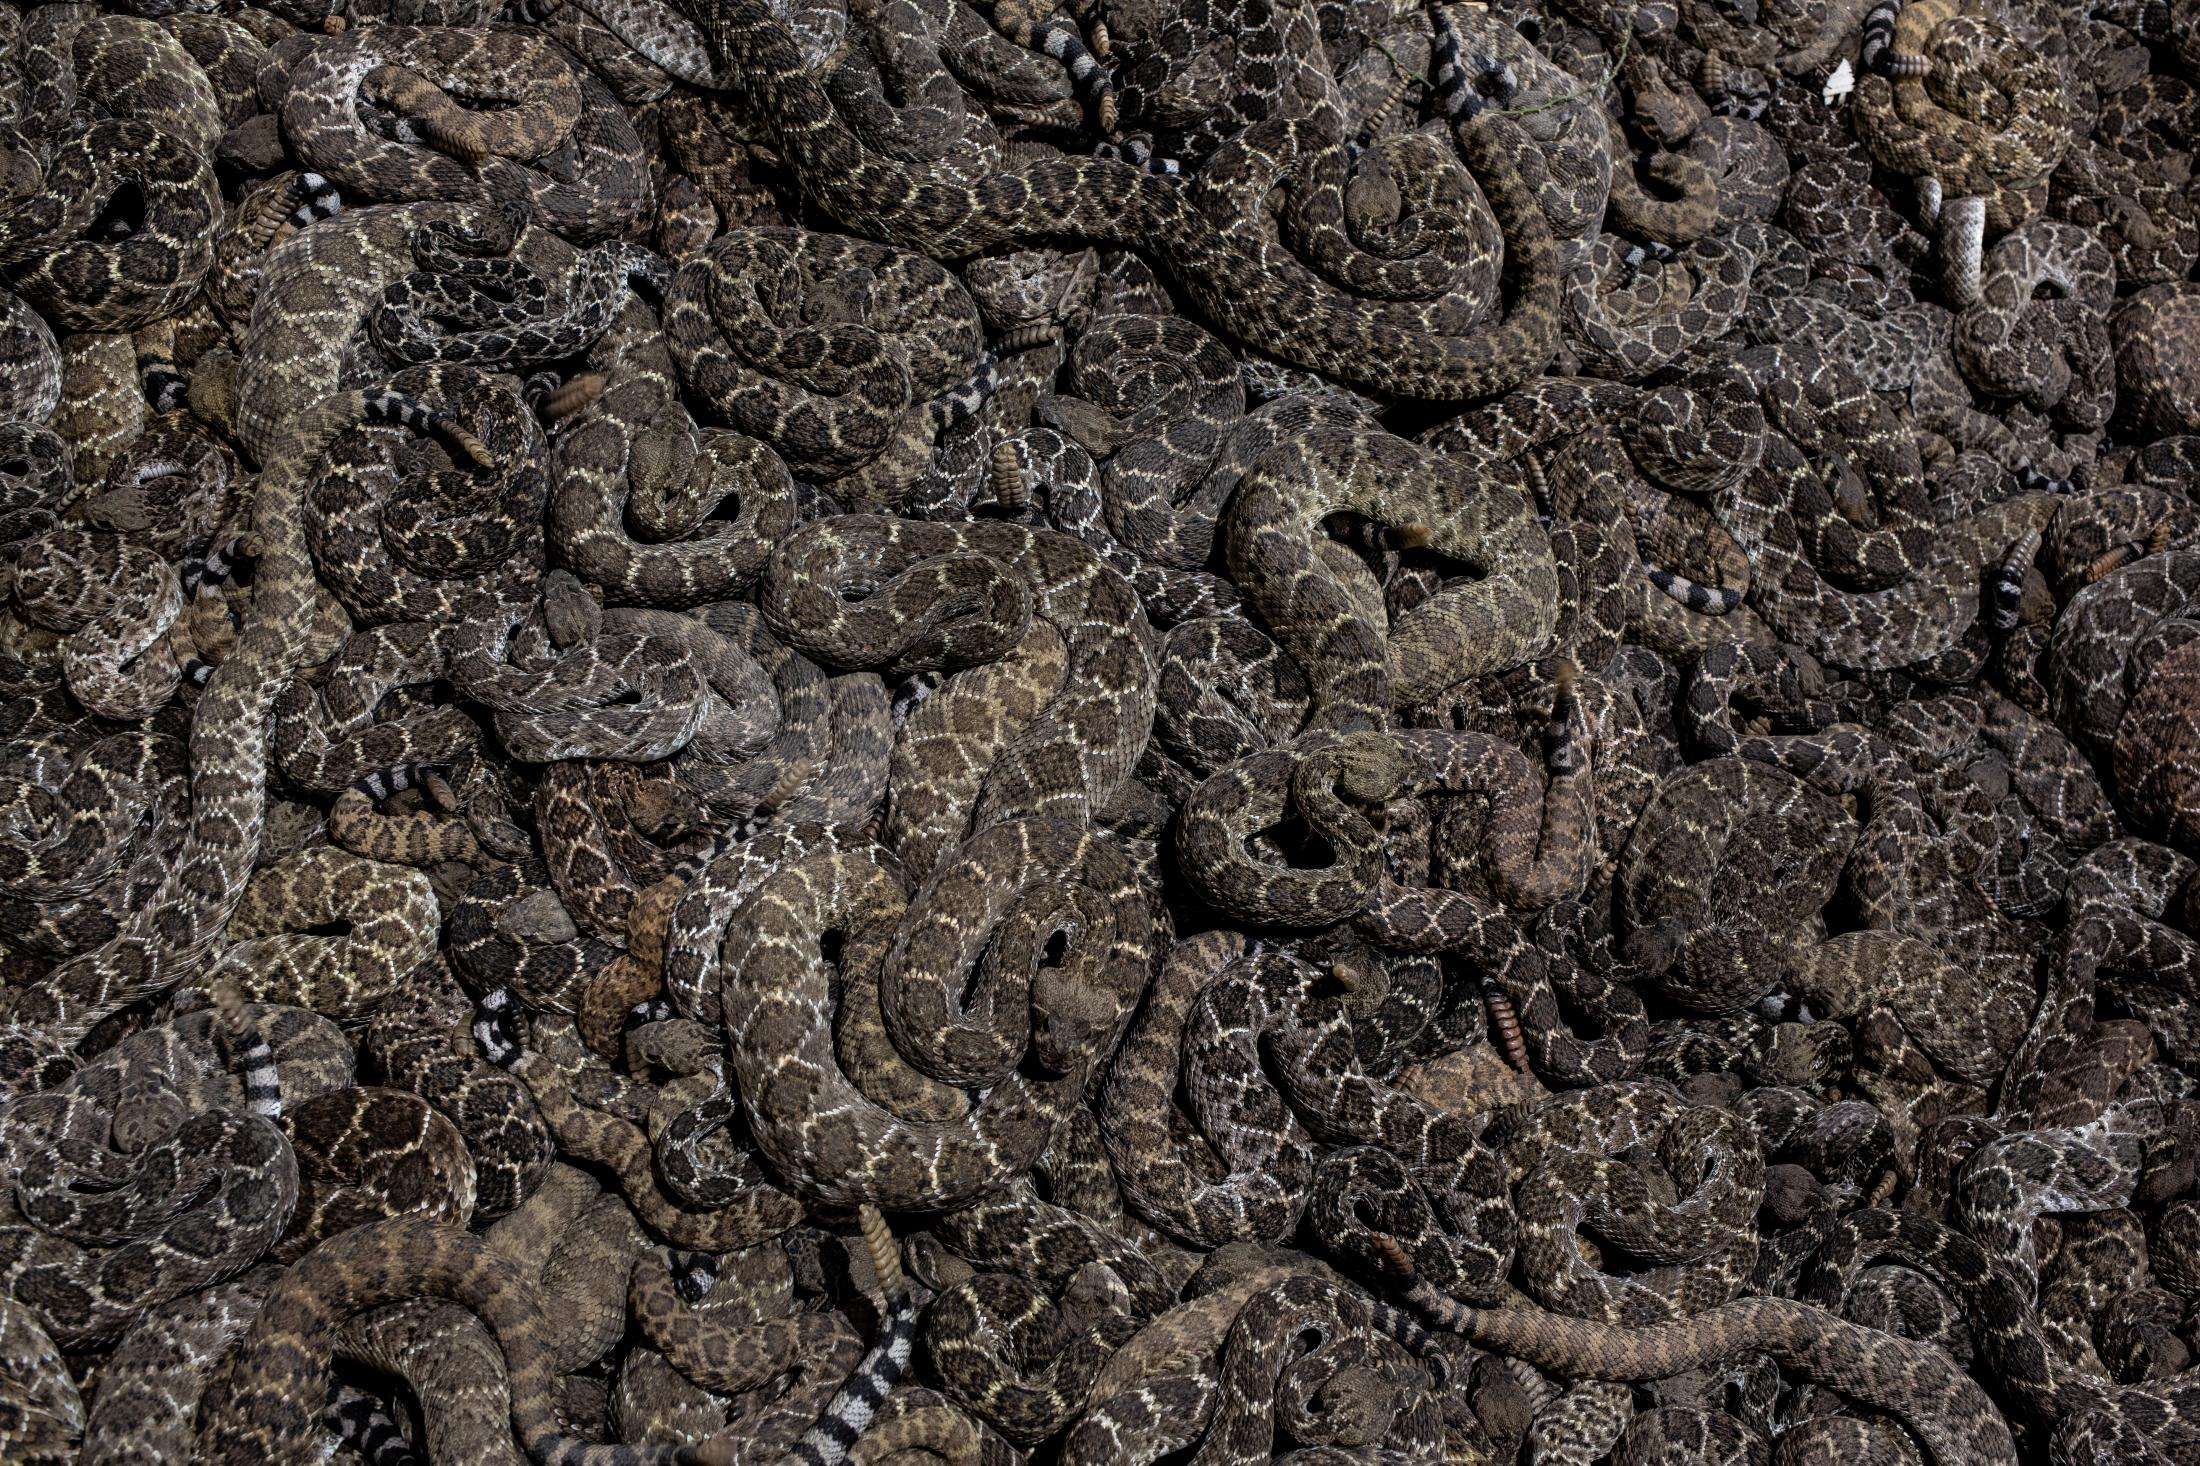 Thousands of Rattlesnakes are brought to the Sweetwater, Rattlesnake Roundup in Texas every year to help control the growing populations.